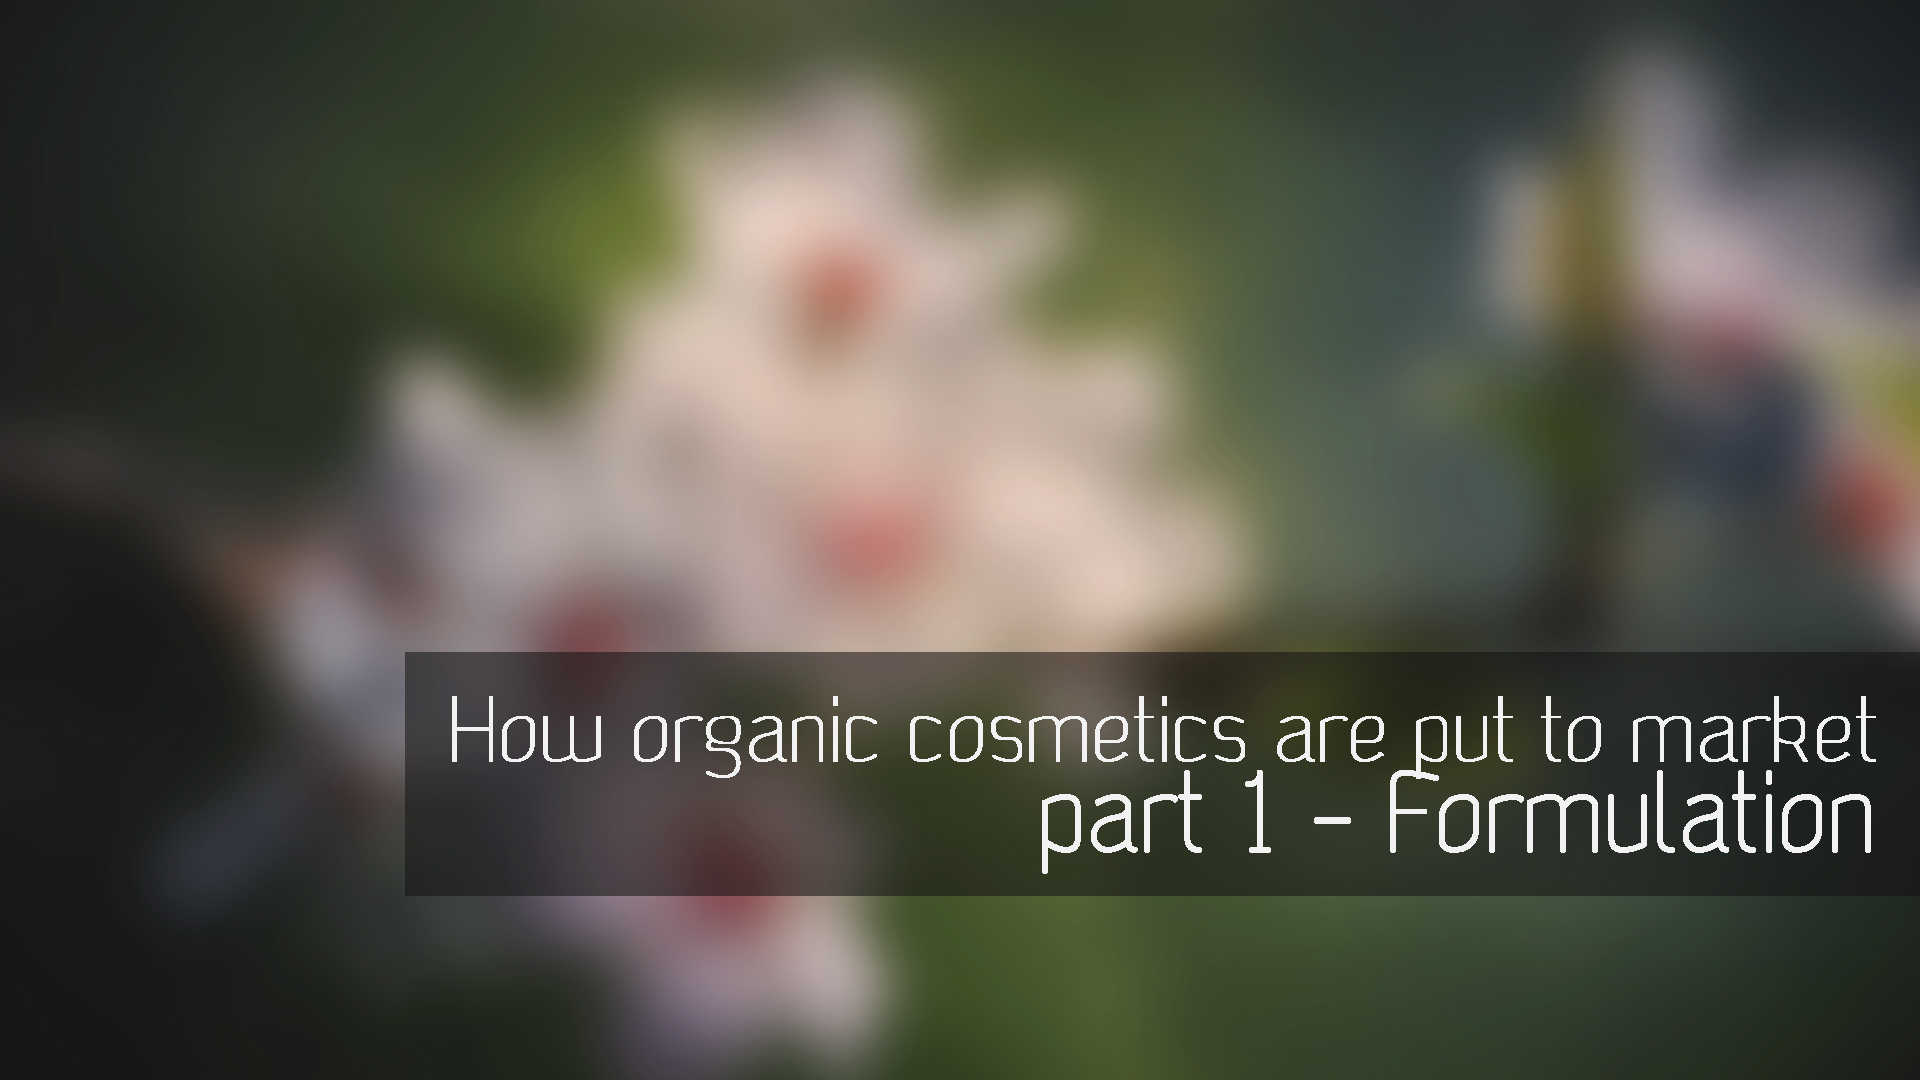 How do organic cosmetics get to market? – part 1